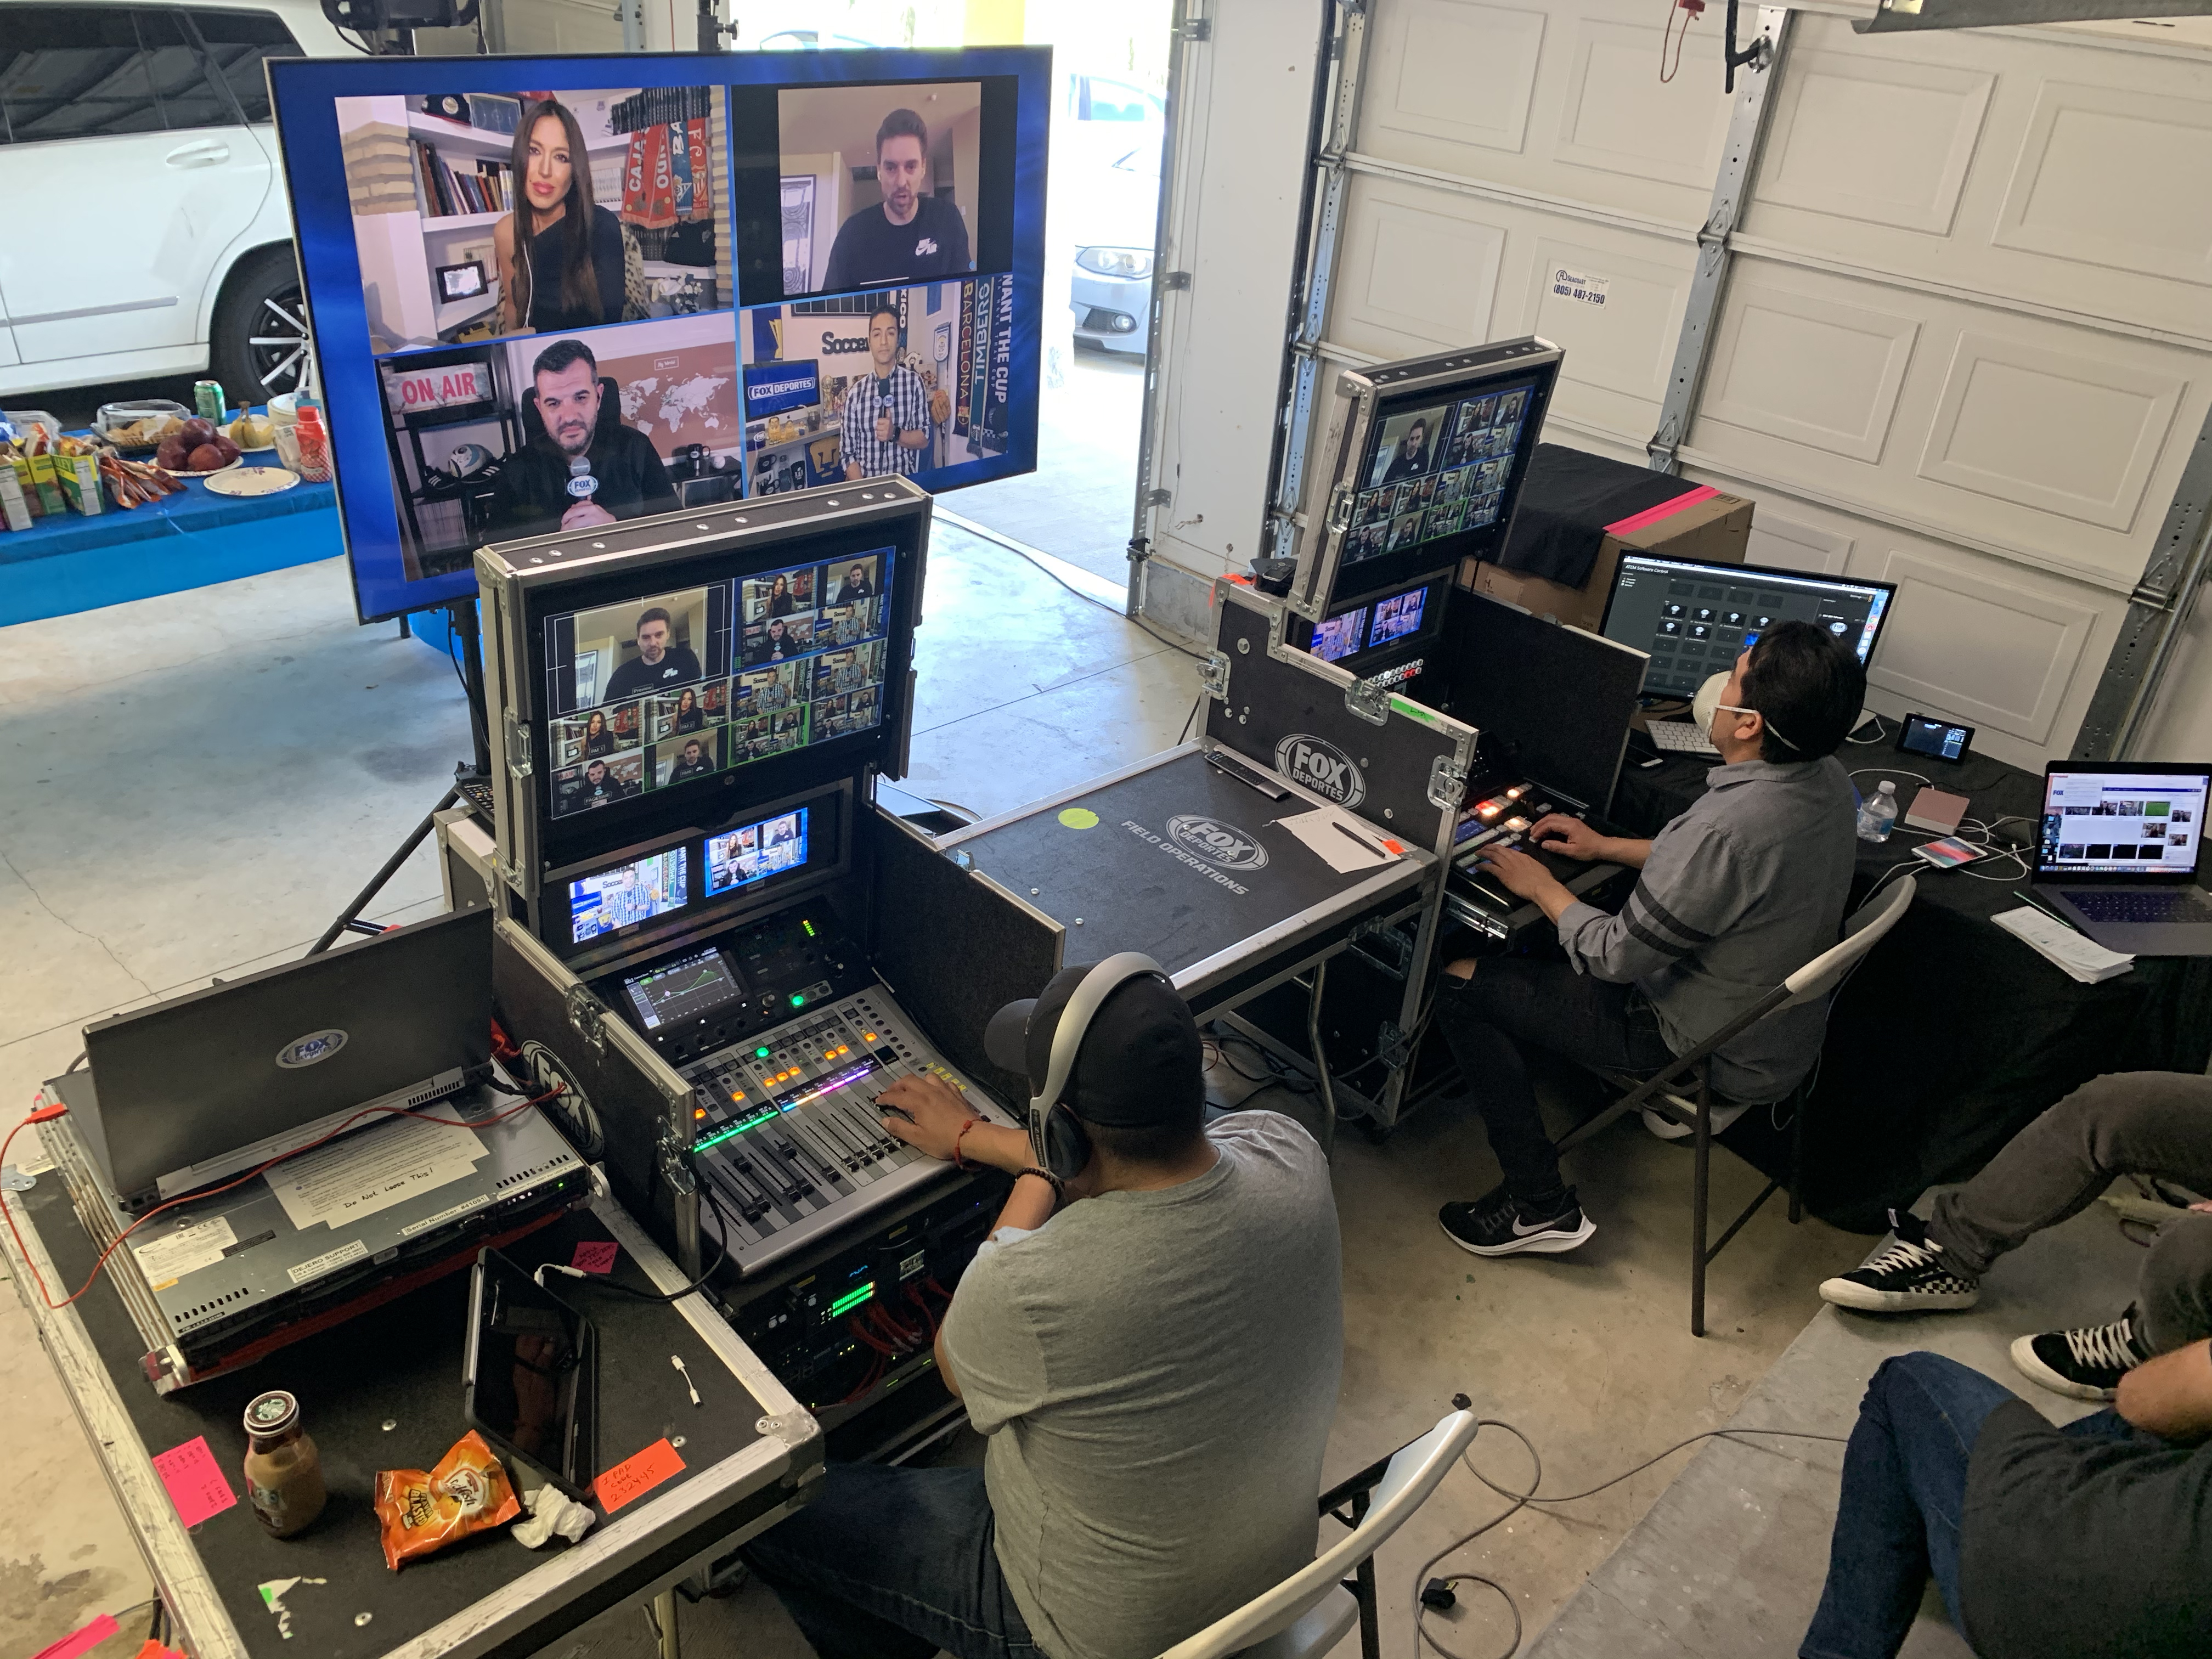 FOX Deportes reassigned its remote production flypacks to continue live sports coverage from its garage-based PCR during the pandemic